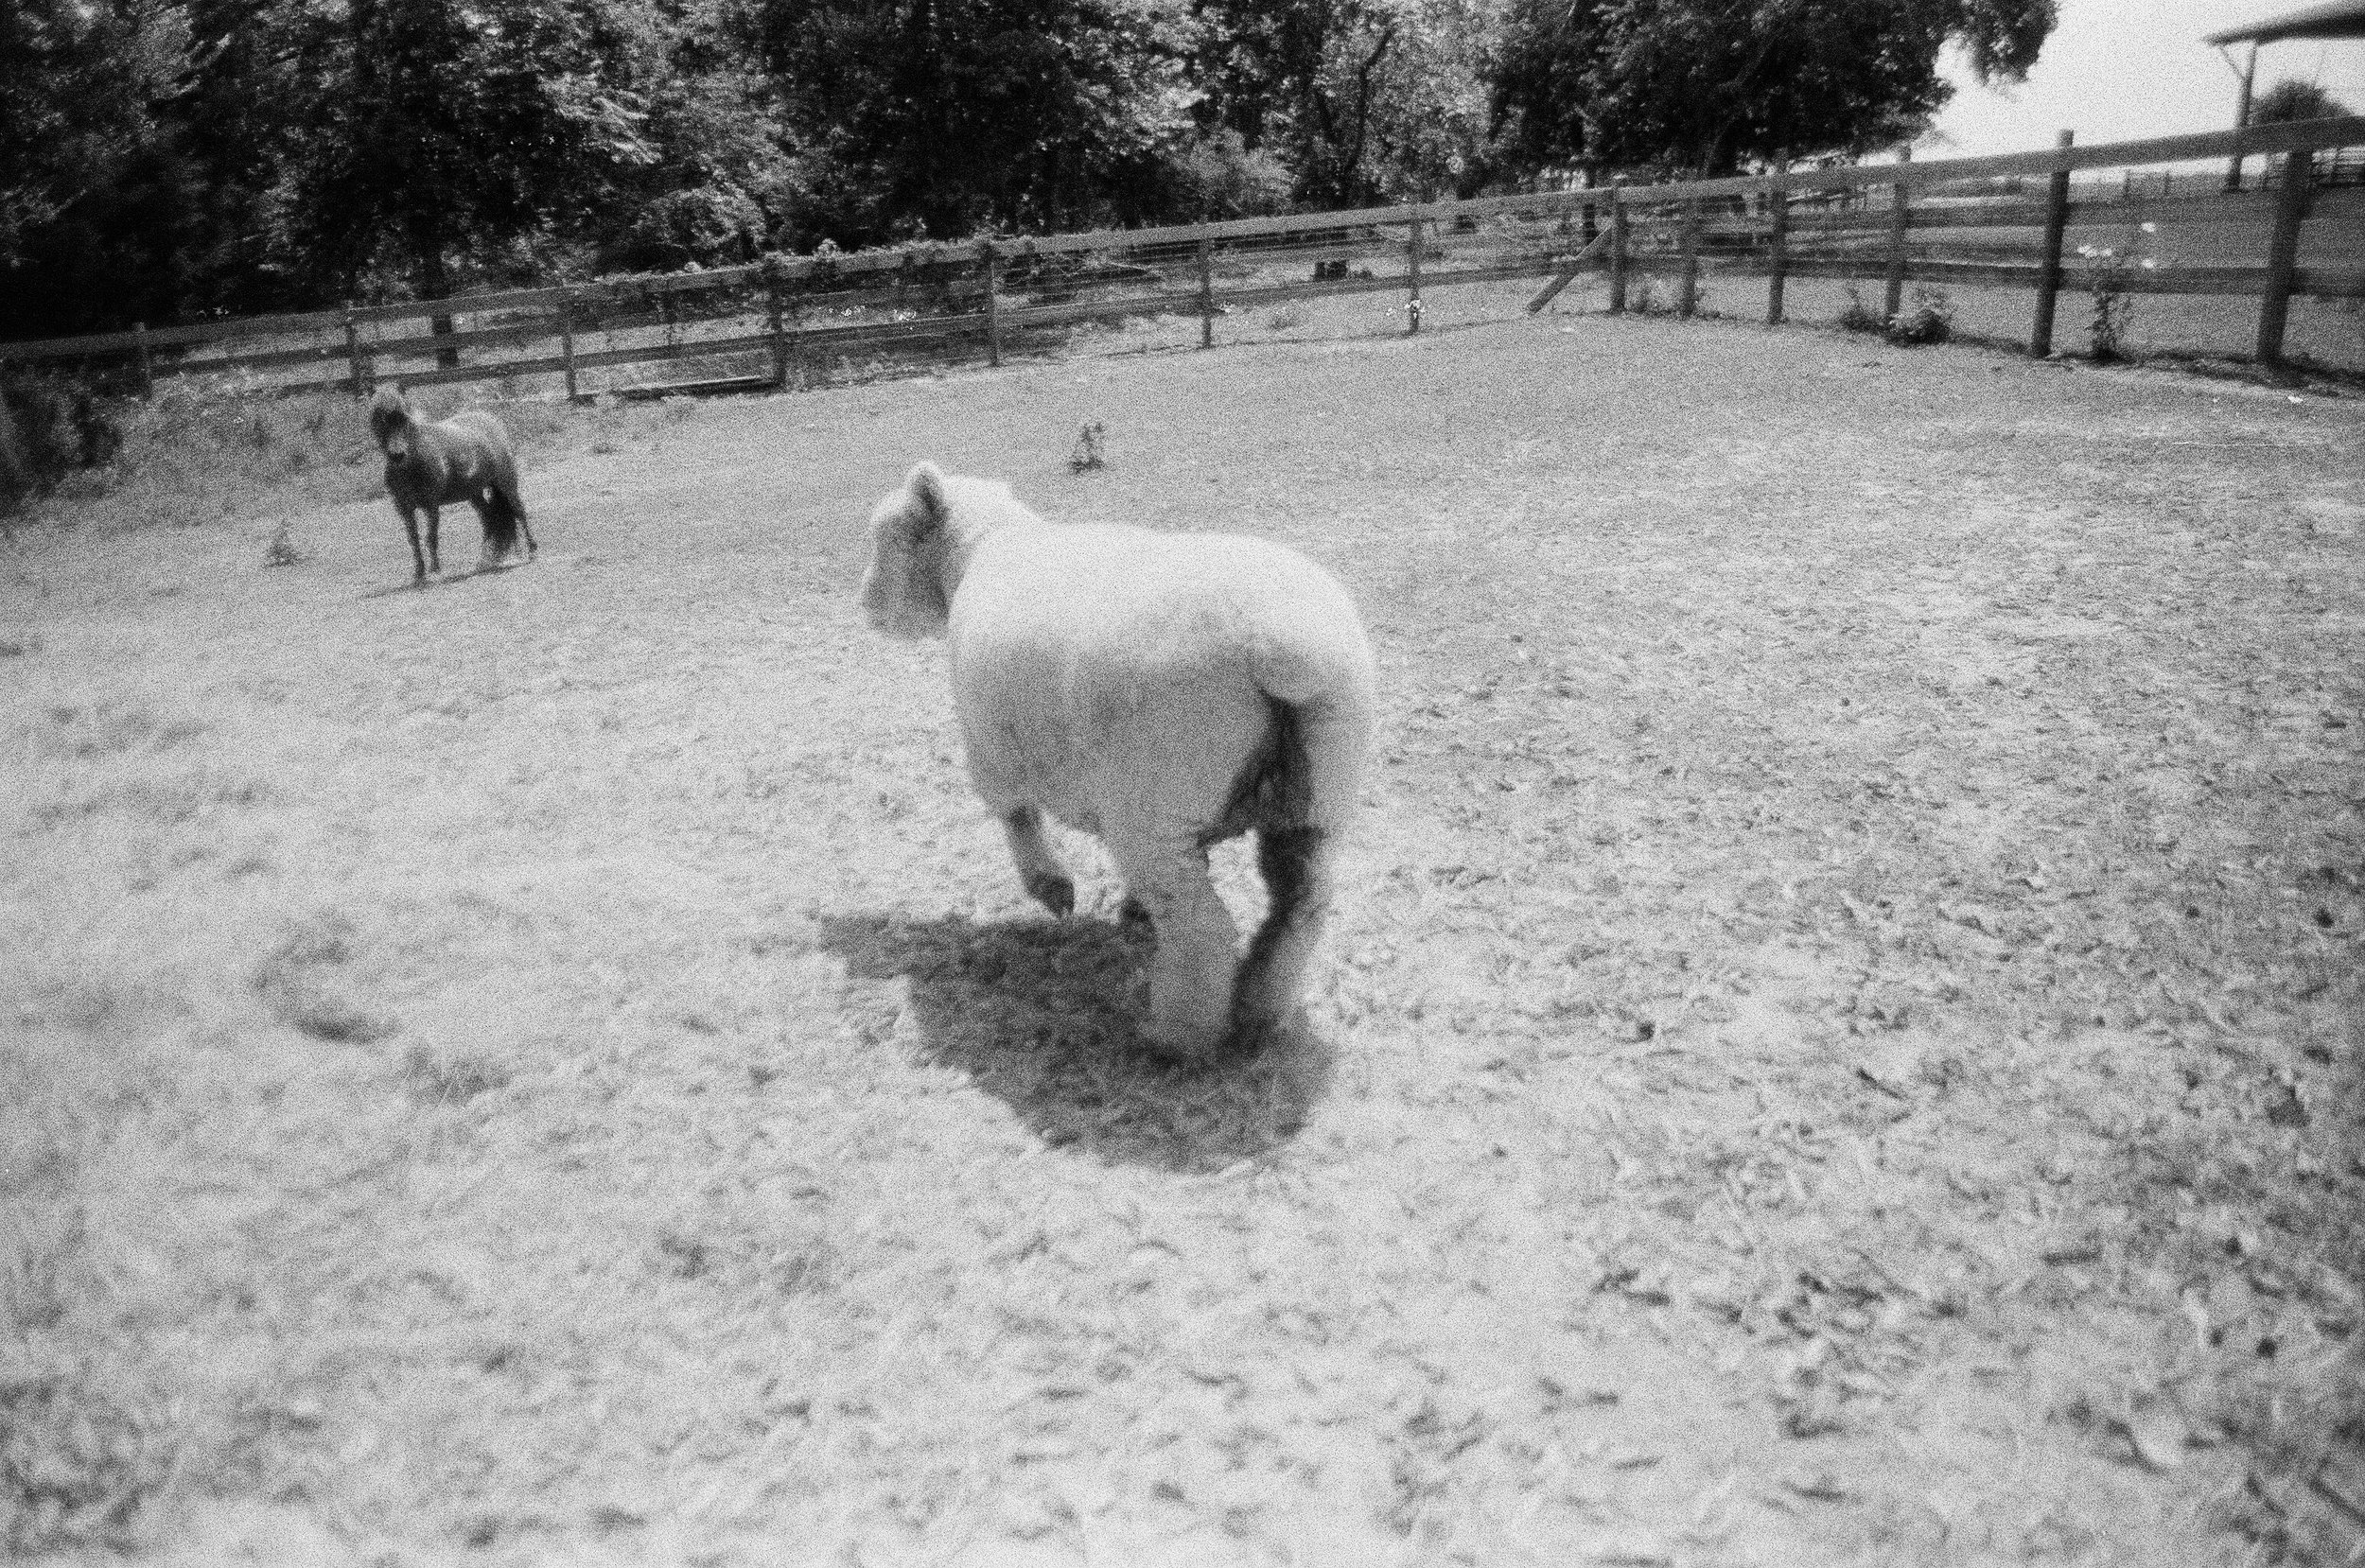 Chasing Sheep (Navasota, TX) - 35mm 2017